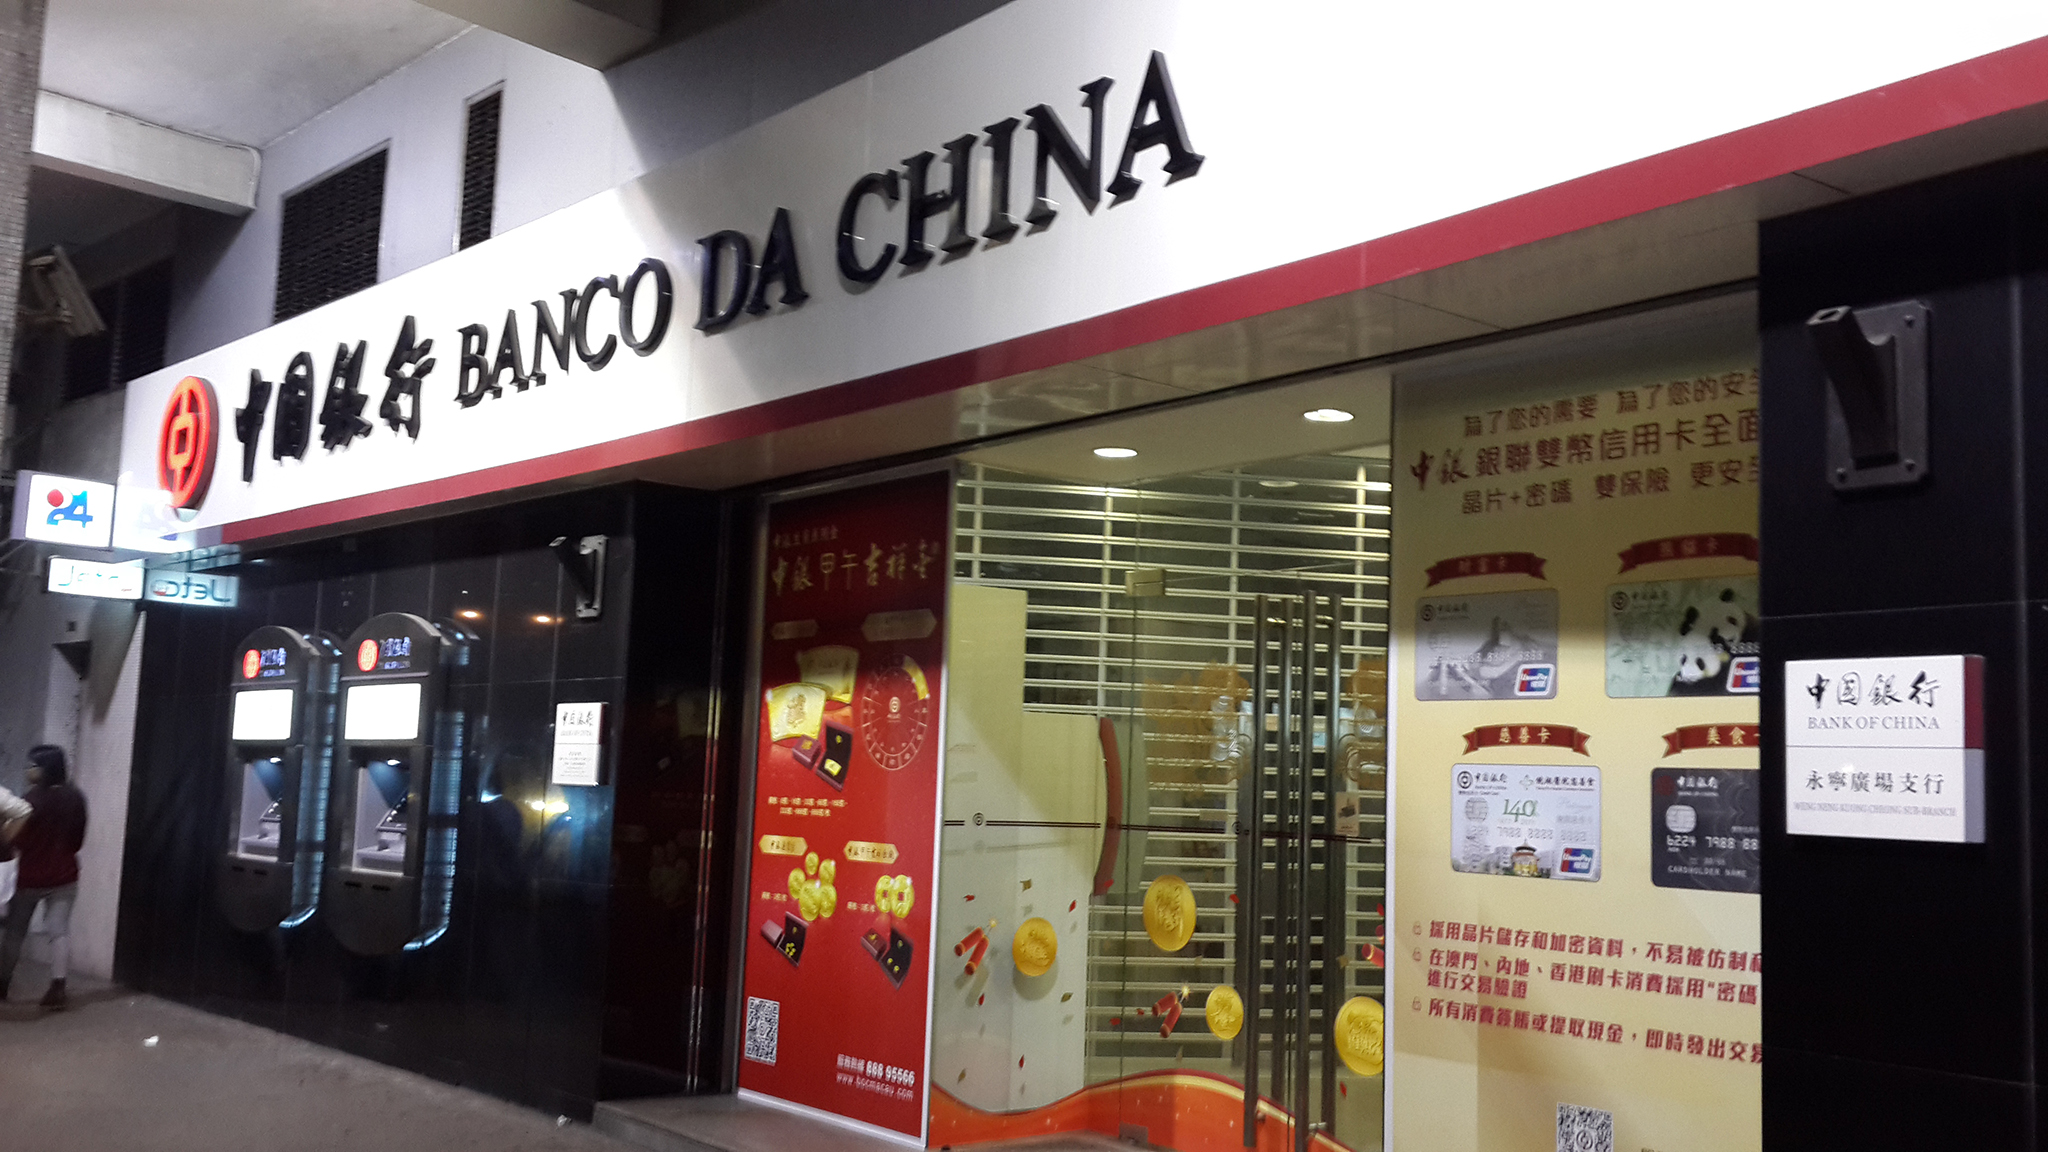 Banco da China | Ângulo de CCTV capta PIN dos utilizadores no multibanco